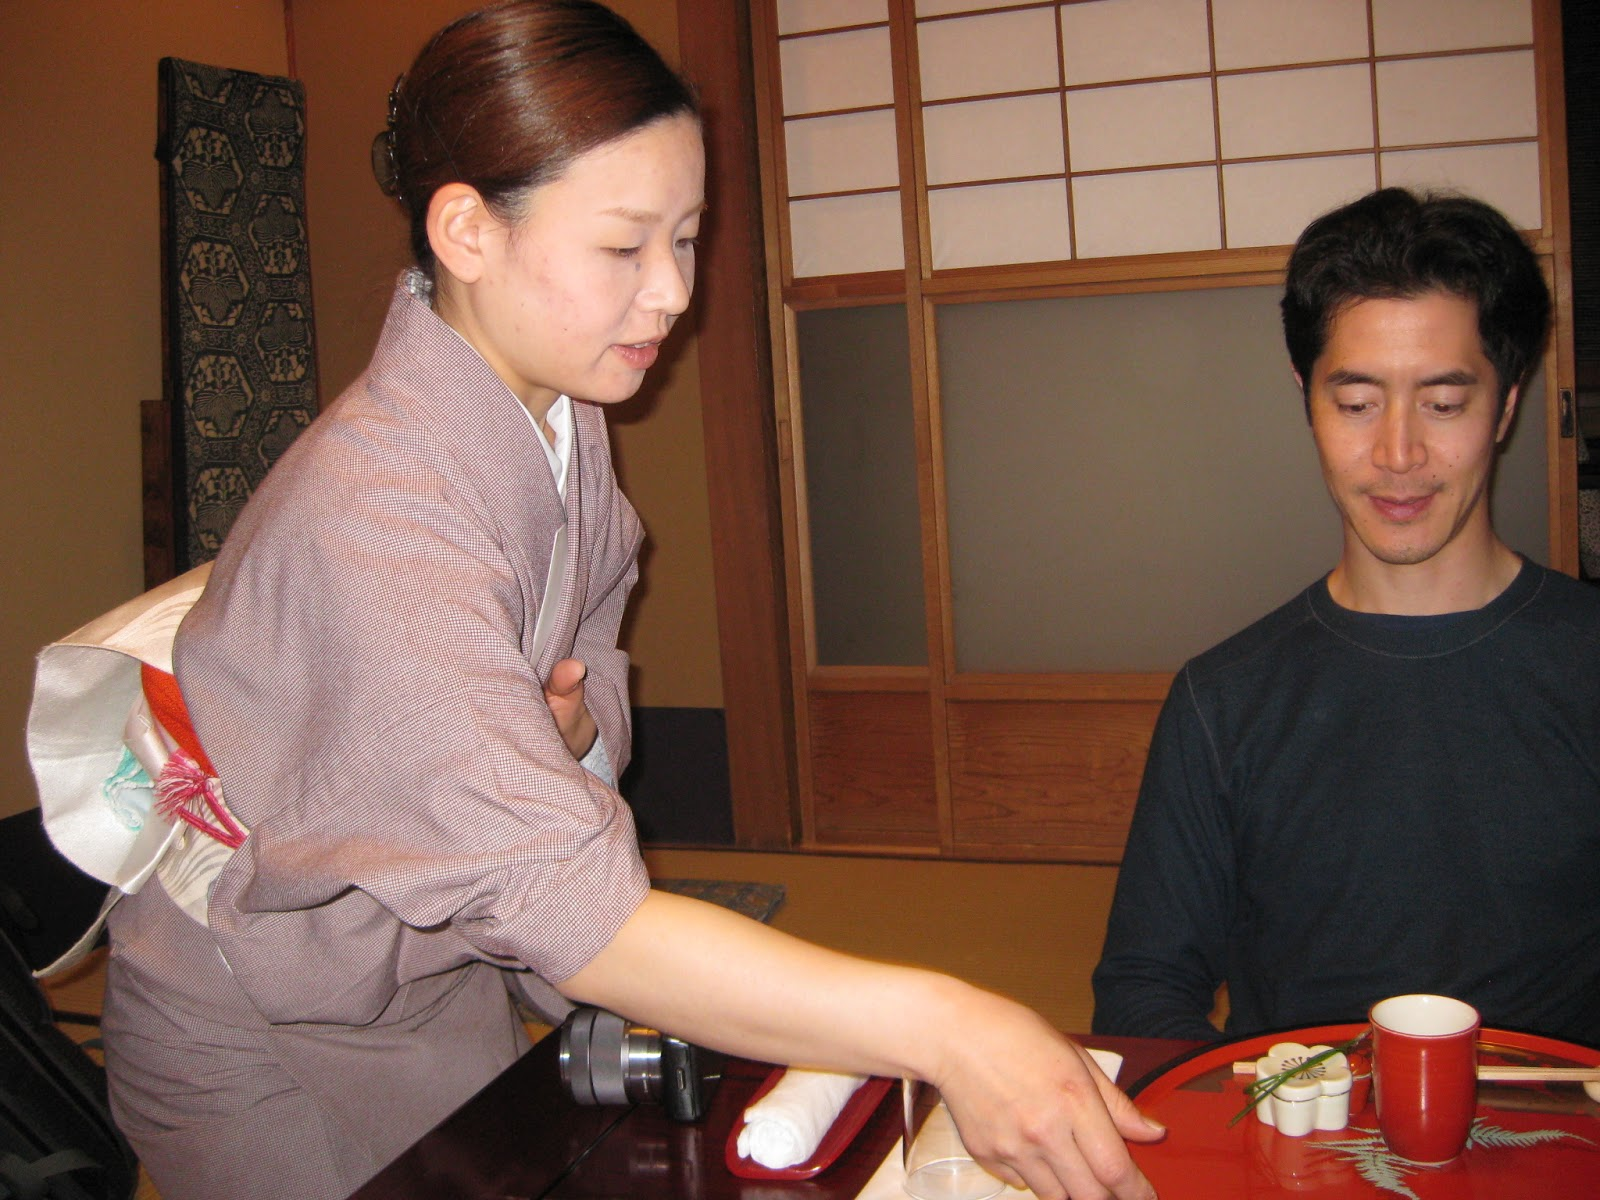 Kyoto - our waitress starts off our 8 course kaiseki meal